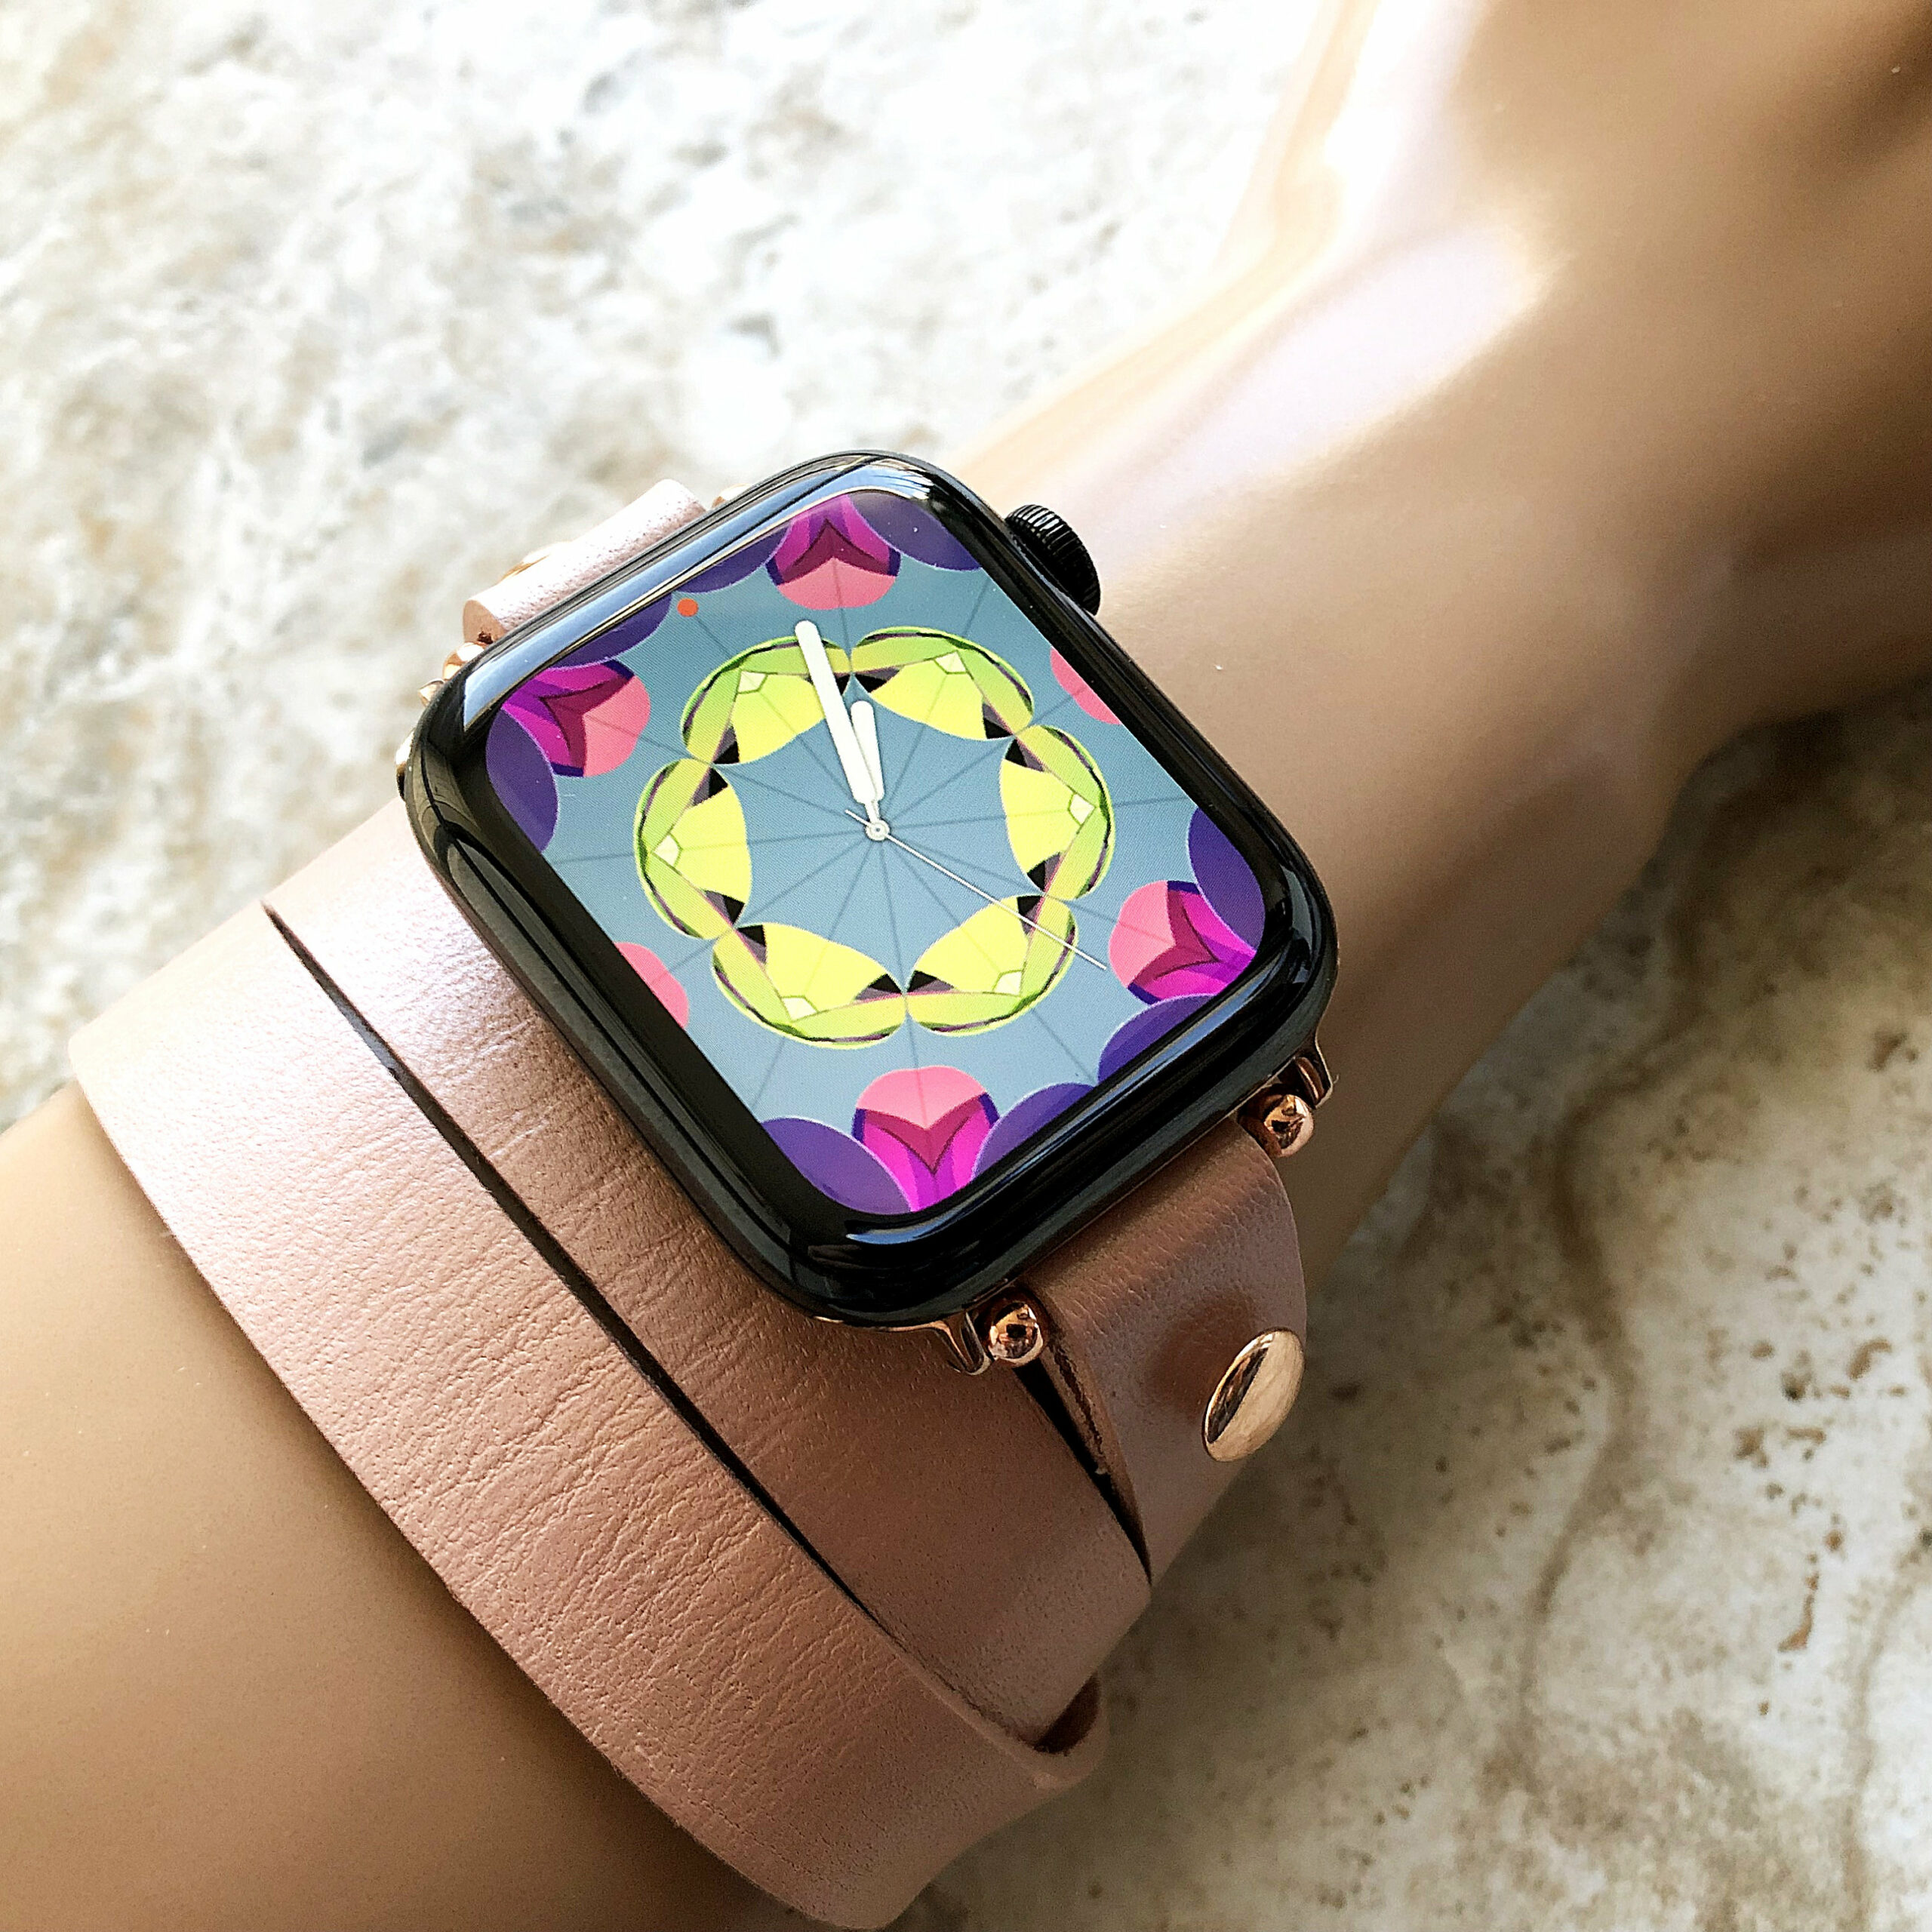 Rose Gold Color Triple Wrap Around Wrist Leather Band For Apple Watch All Series Se 6 5 4 3 2 1 Nike Hermes Edition 38 40mm 42mm 44mm Bracelet Strap Nickston All Rights Reserved